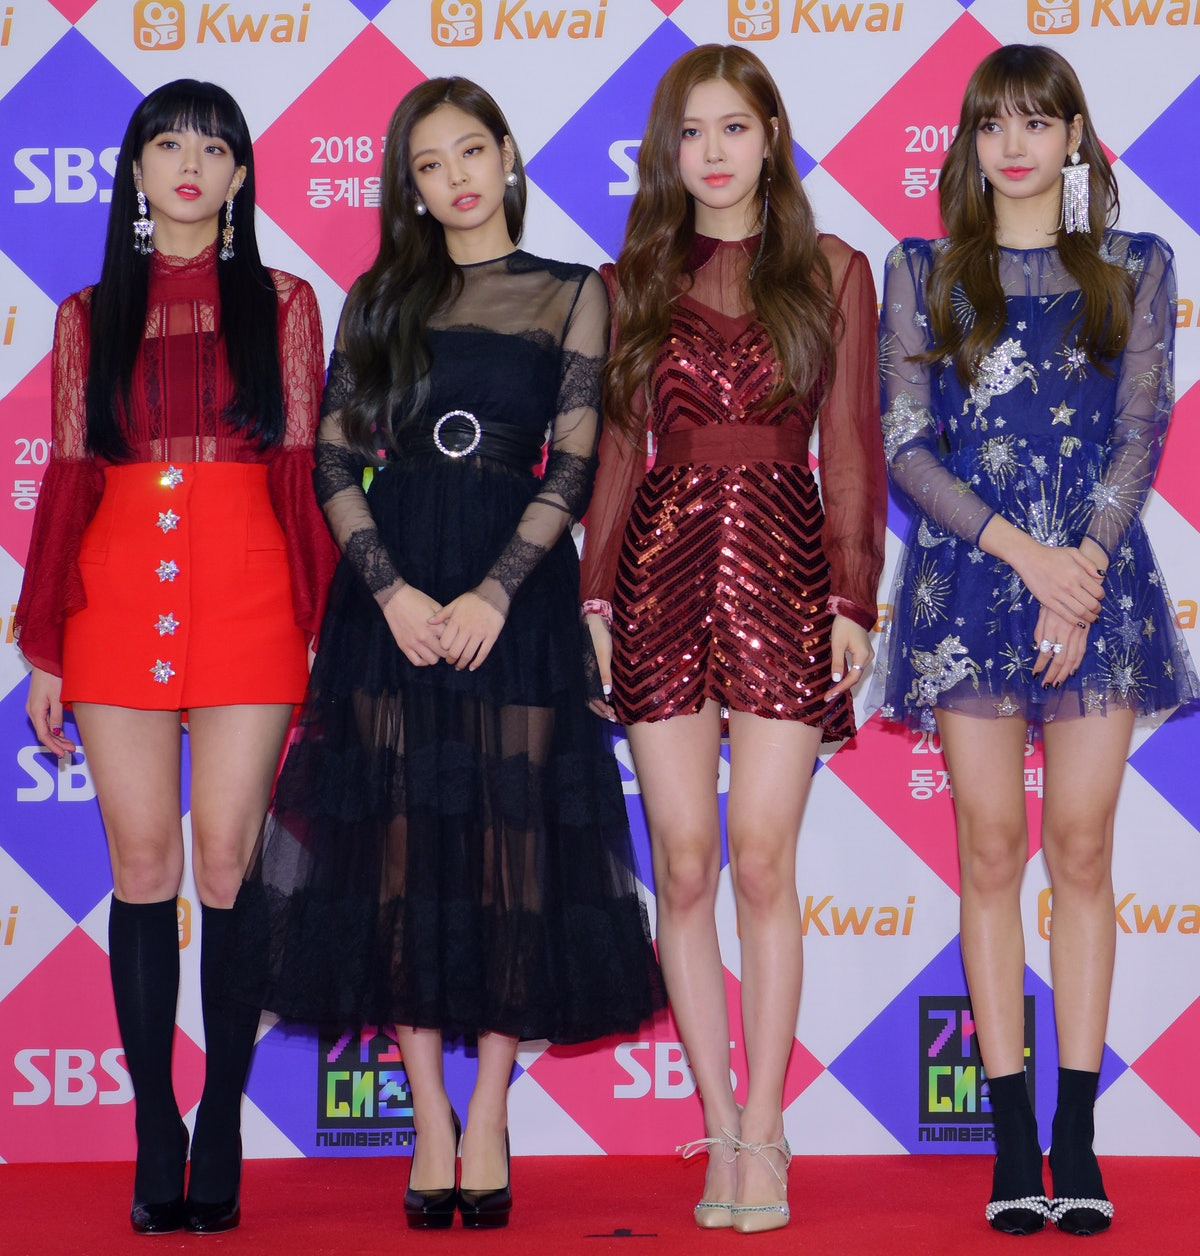 SEOUL, SOUTH KOREA - DECEMBER 25: BLACKPINK attends the 2017 SBS Gayo Daejeon 'Battle of the Bands' ...